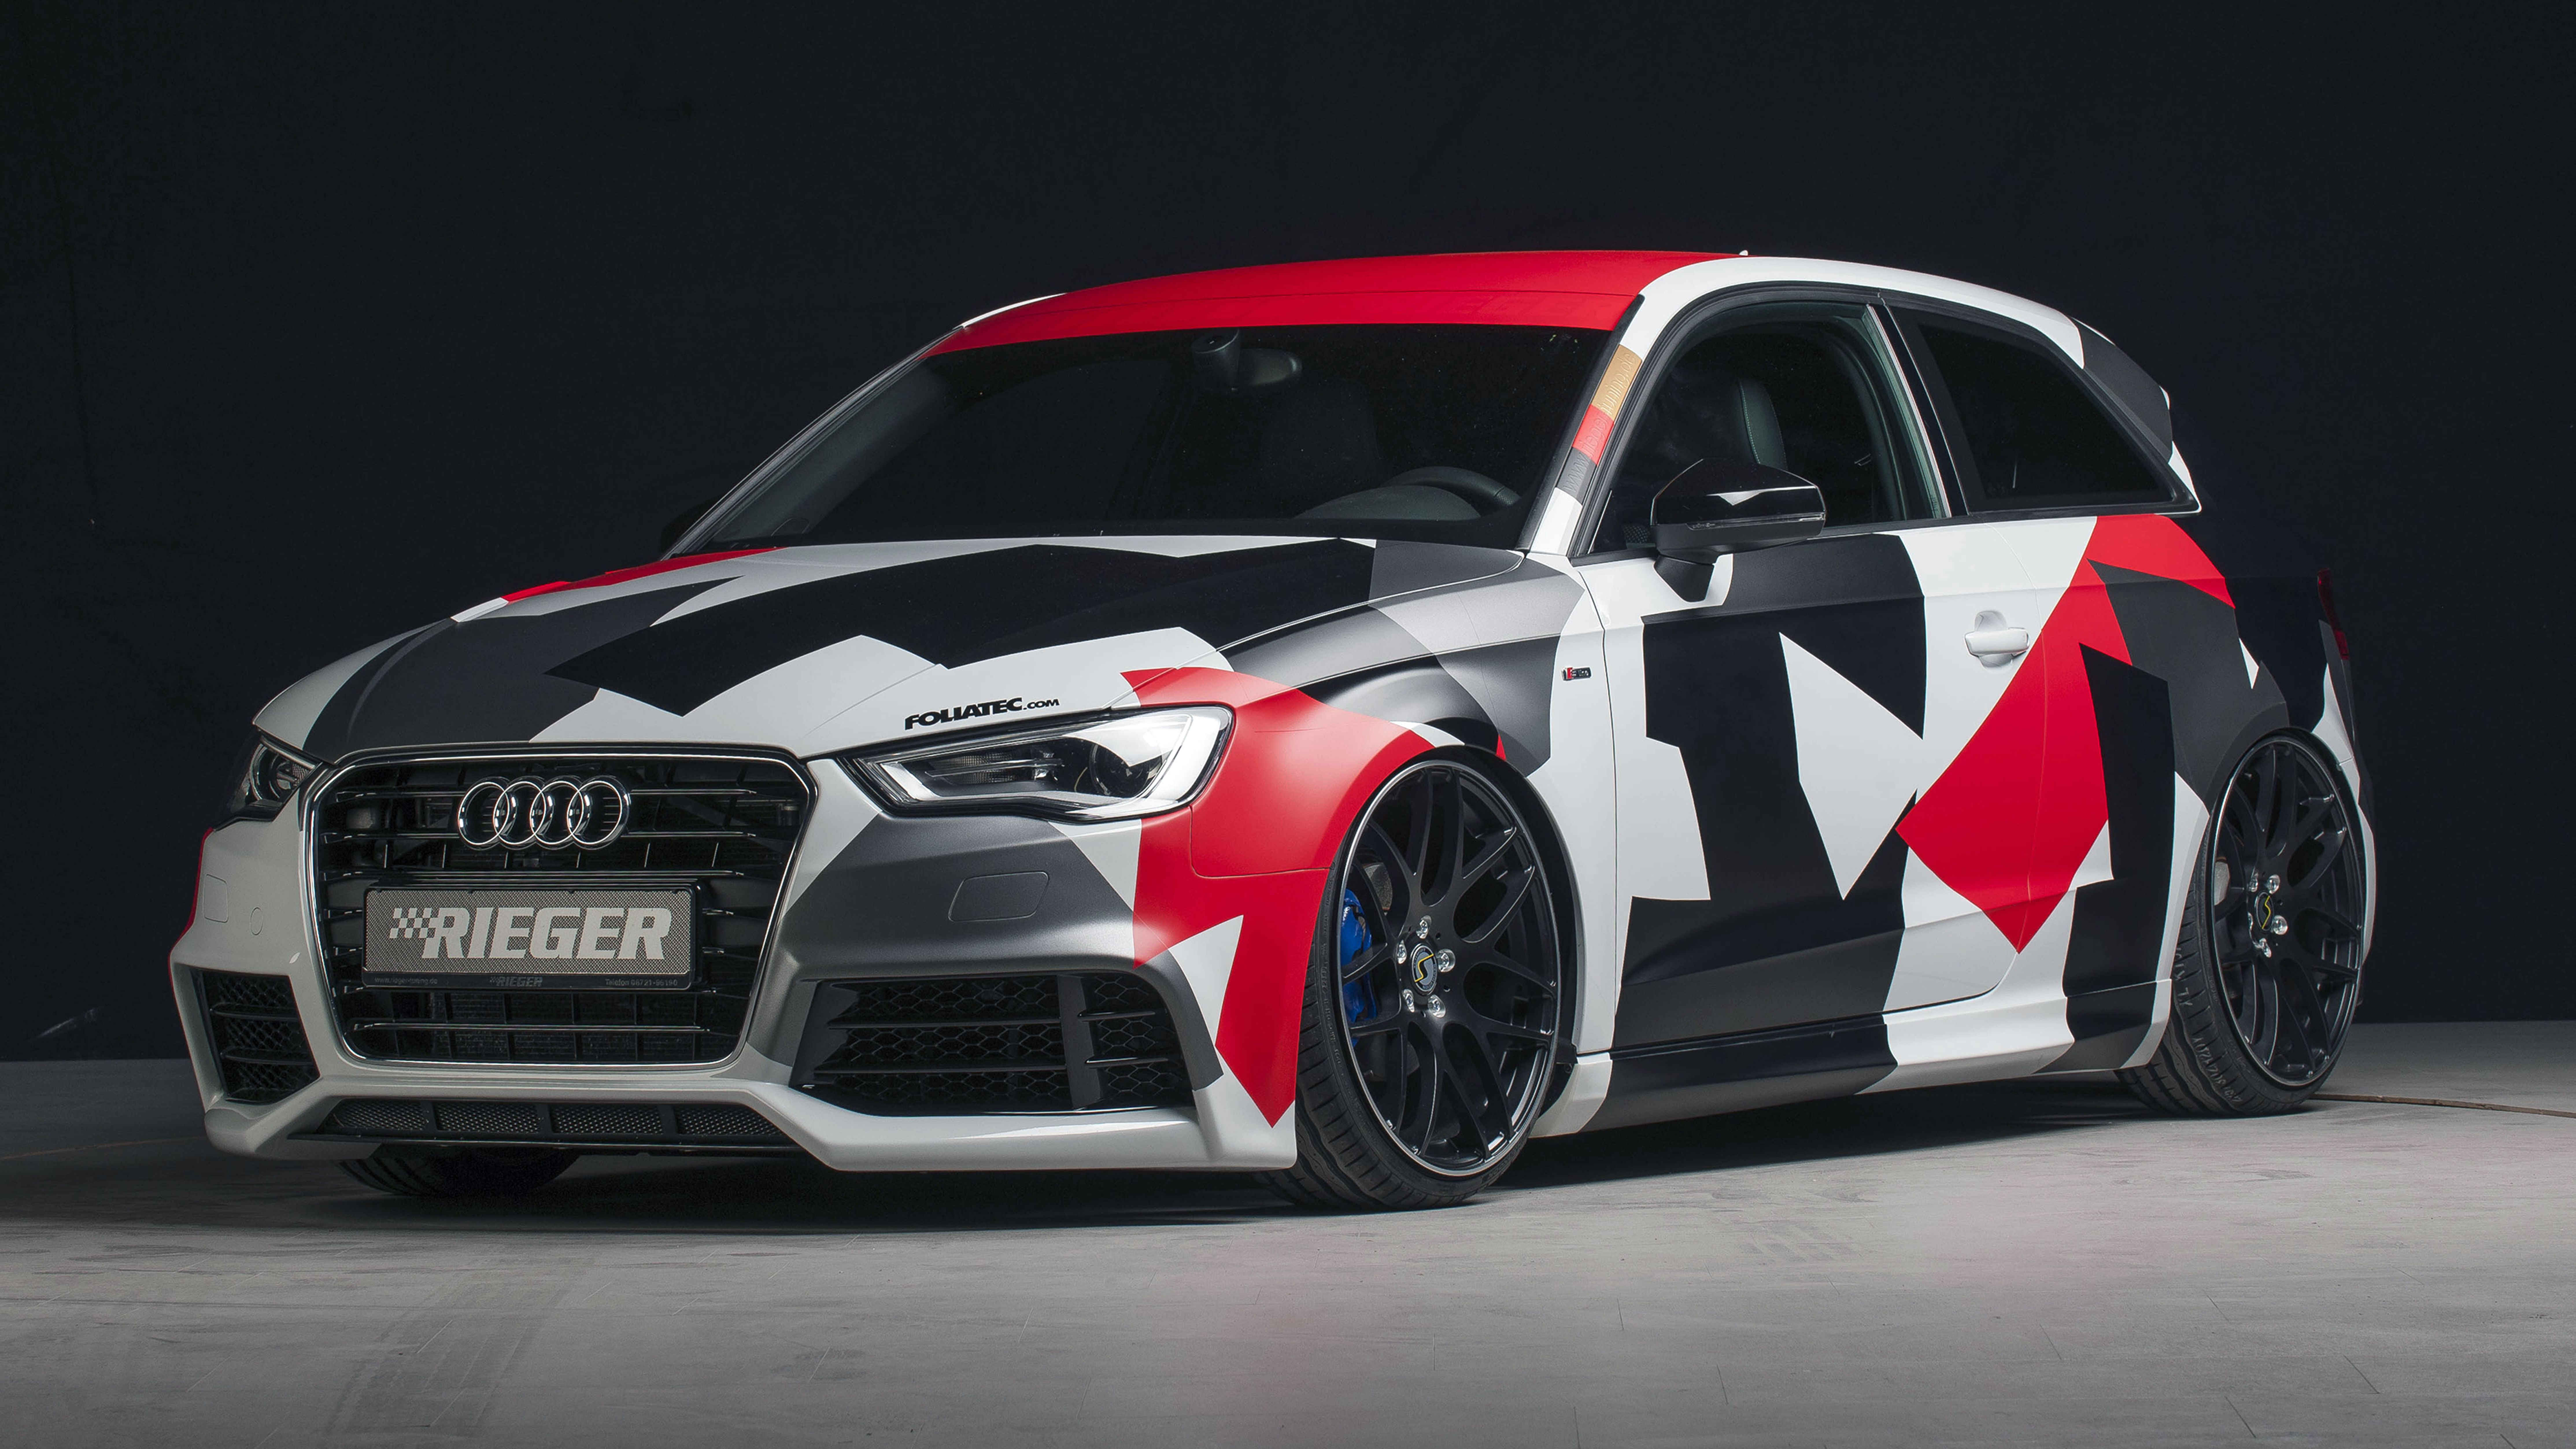 Rieger audi rs3